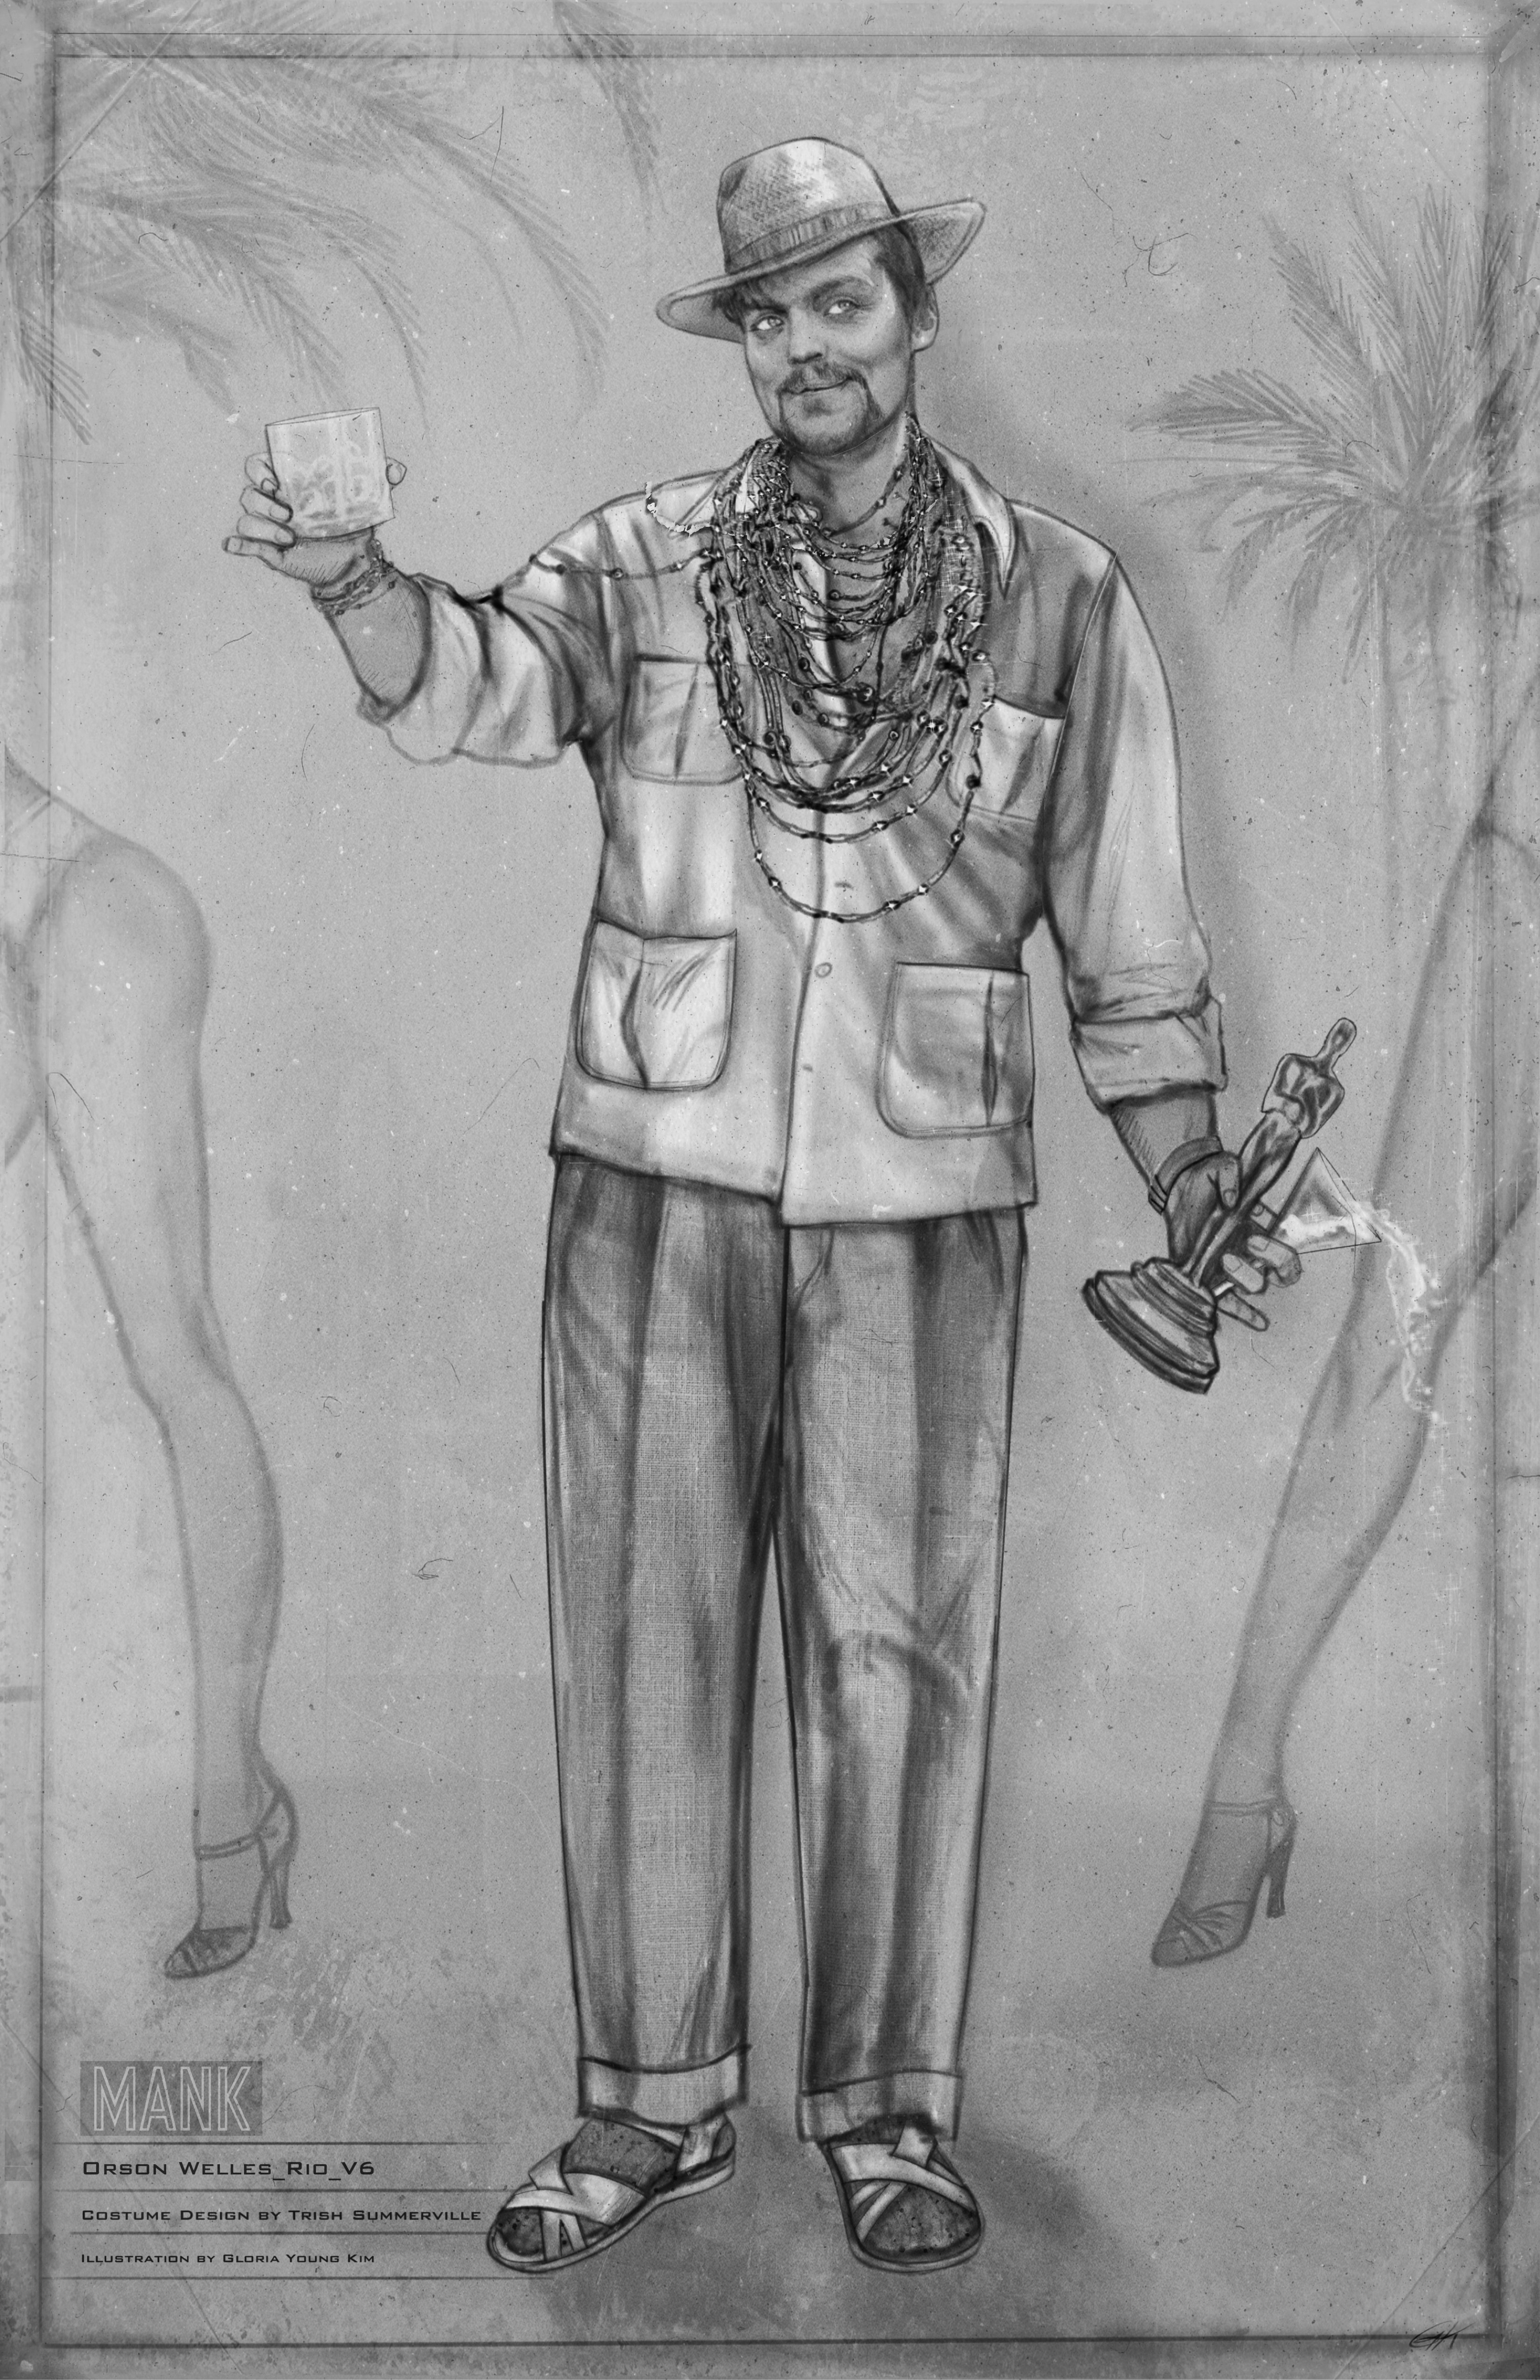 Black-and-white costume sketch of Orson Welles in Rio. He appears to be having a fine time, holding a tumbler in one hand, a martini and an Oscar in the other. Behind him are palm trees and the naked legs of some impossibly tall women. He wears sandals (with socks?!), a baggy shirt and trousers, and strings and strings of necklaces and bracelets.